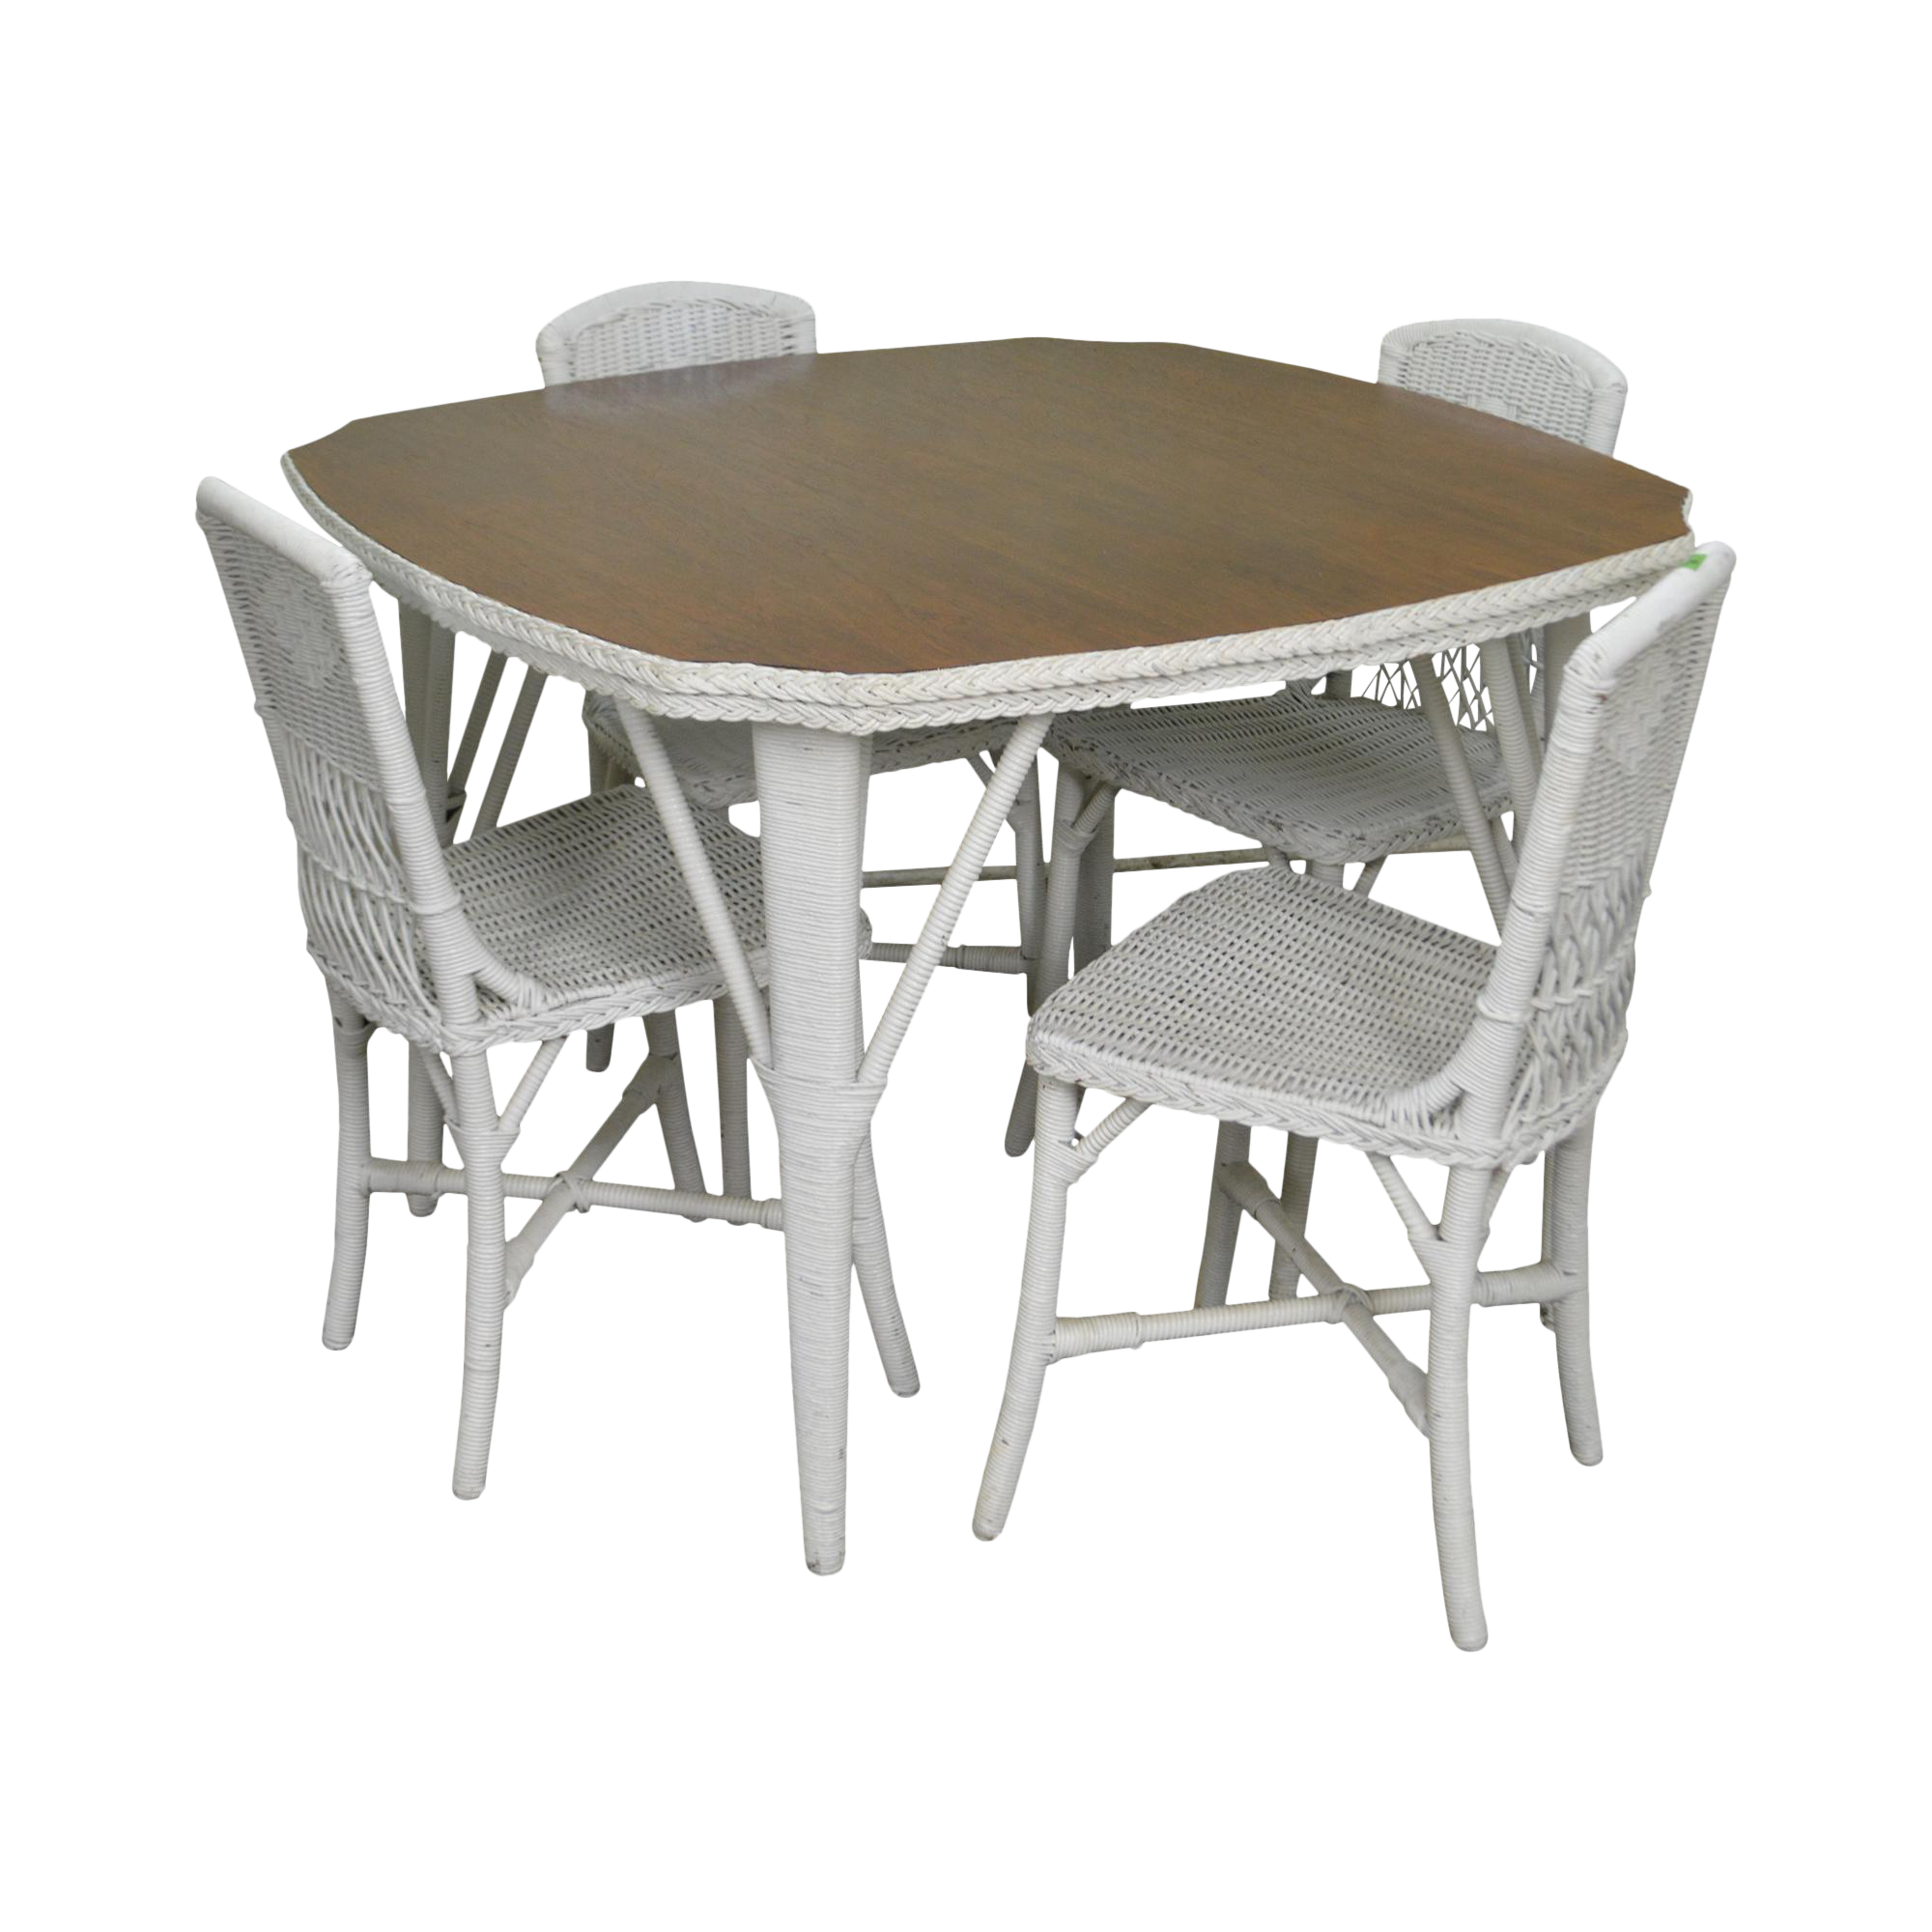 Antique White Wicker Mahogany Top Dining Table W/ 4 Chairs